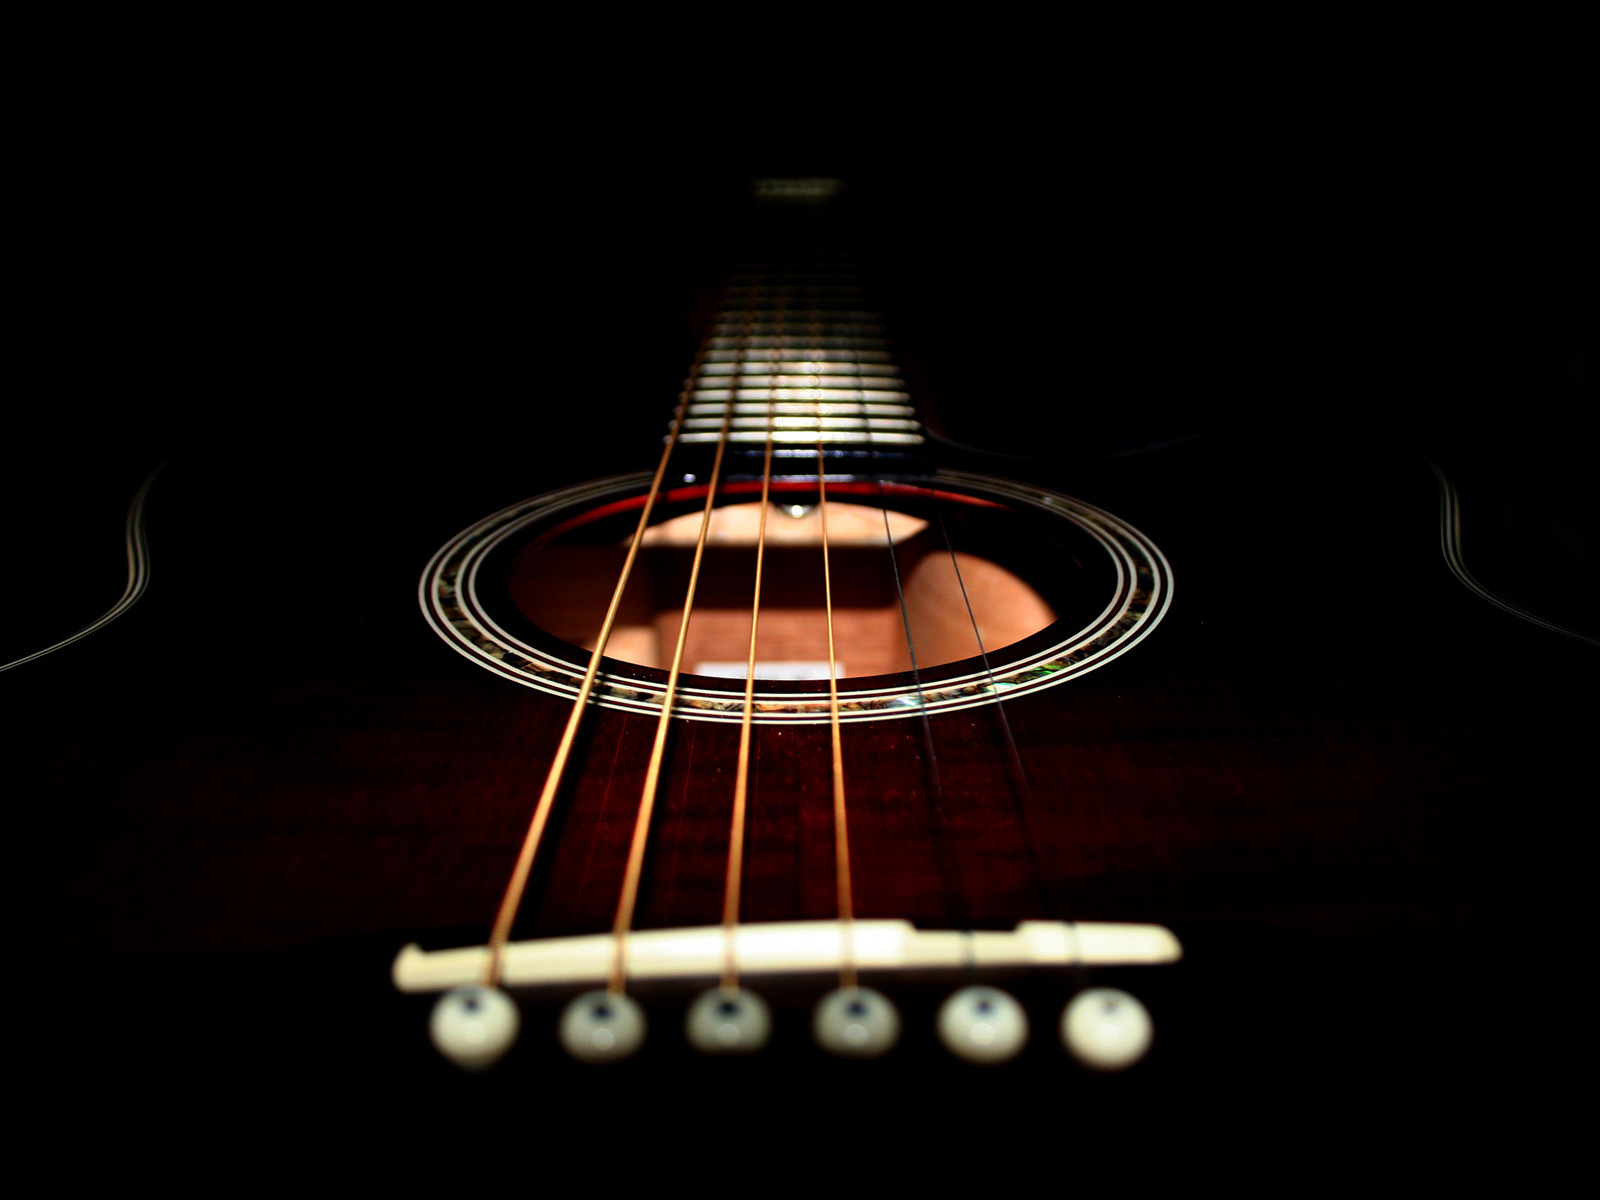 11484 download wallpaper Music, Tools, Guitars, Objects screensavers and pictures for free